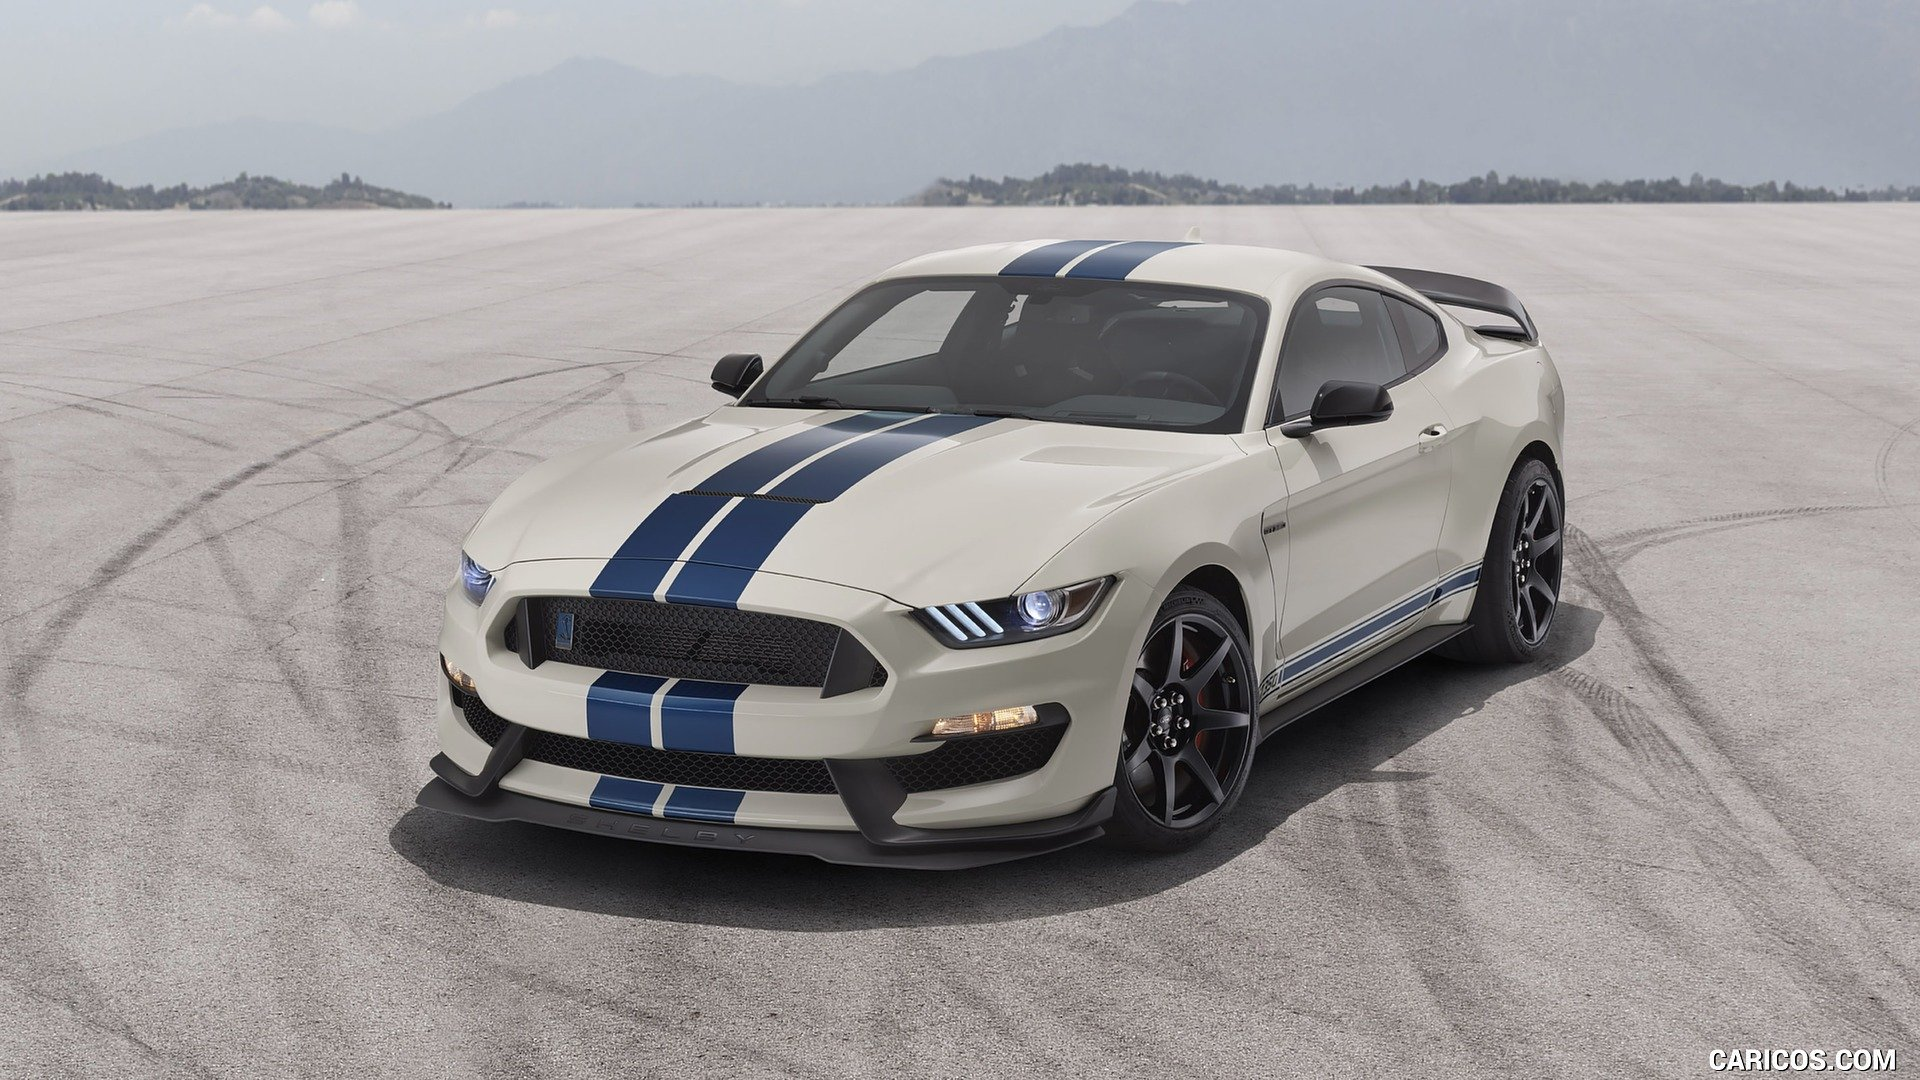 2020 Ford Mustang Shelby GT350 Heritage Edition Package   Front 1920x1080